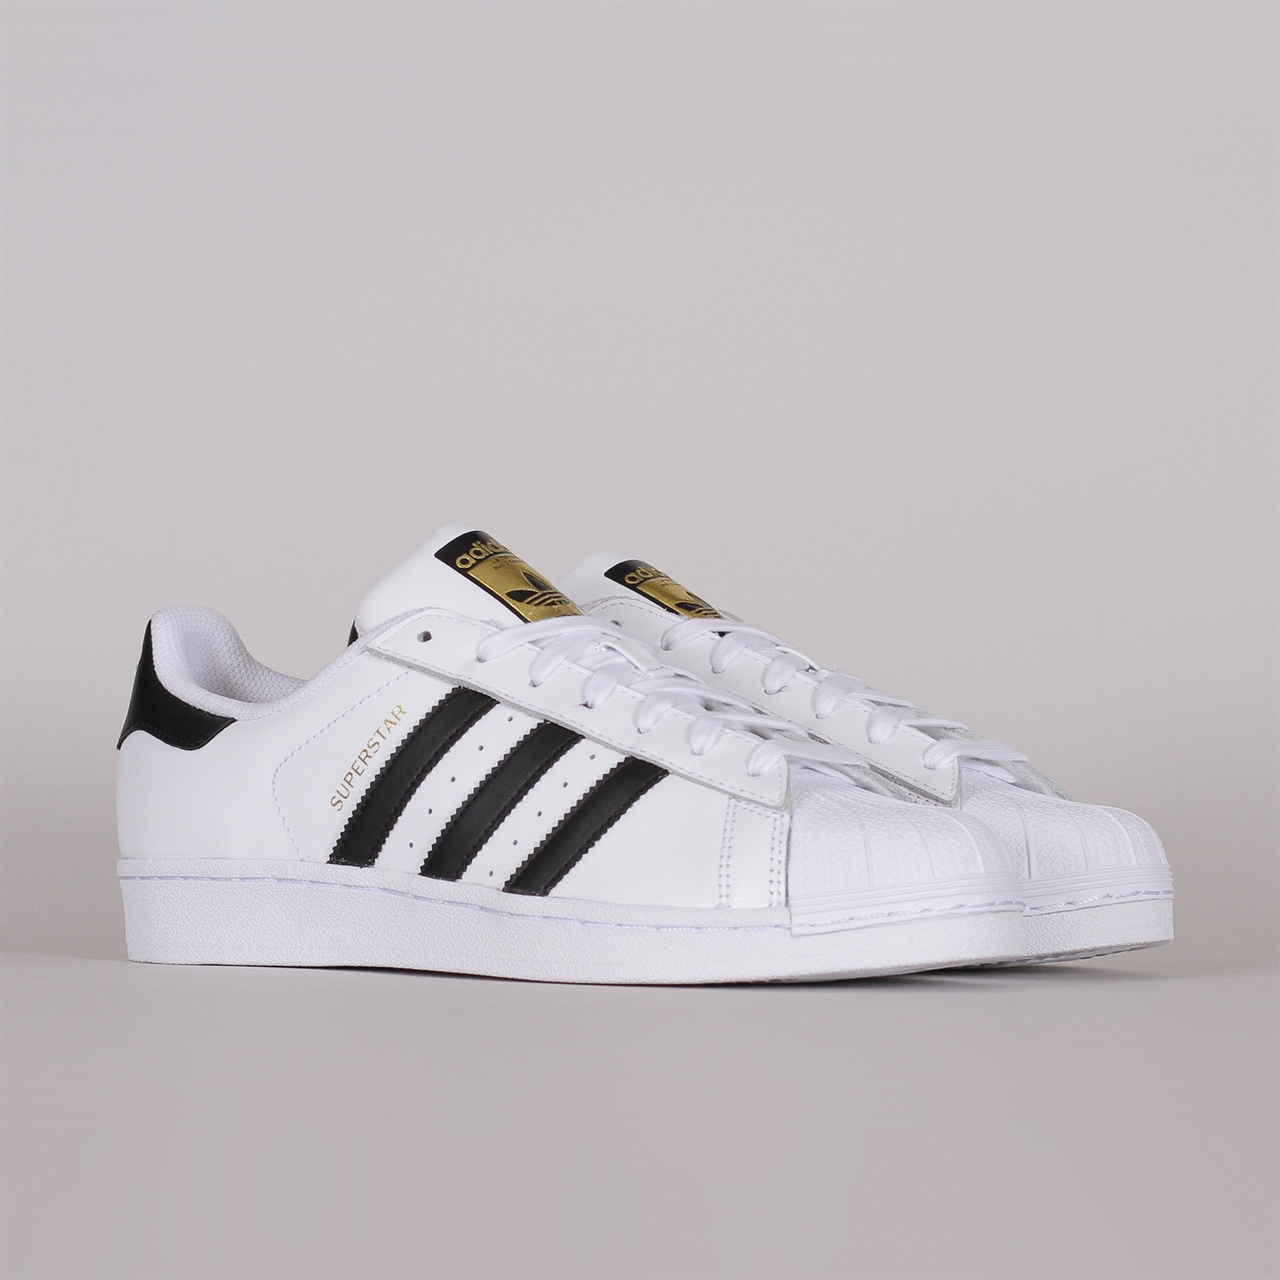 Shelta - Adidas Originals Superstar Foundation (C77124) 5591ba96f